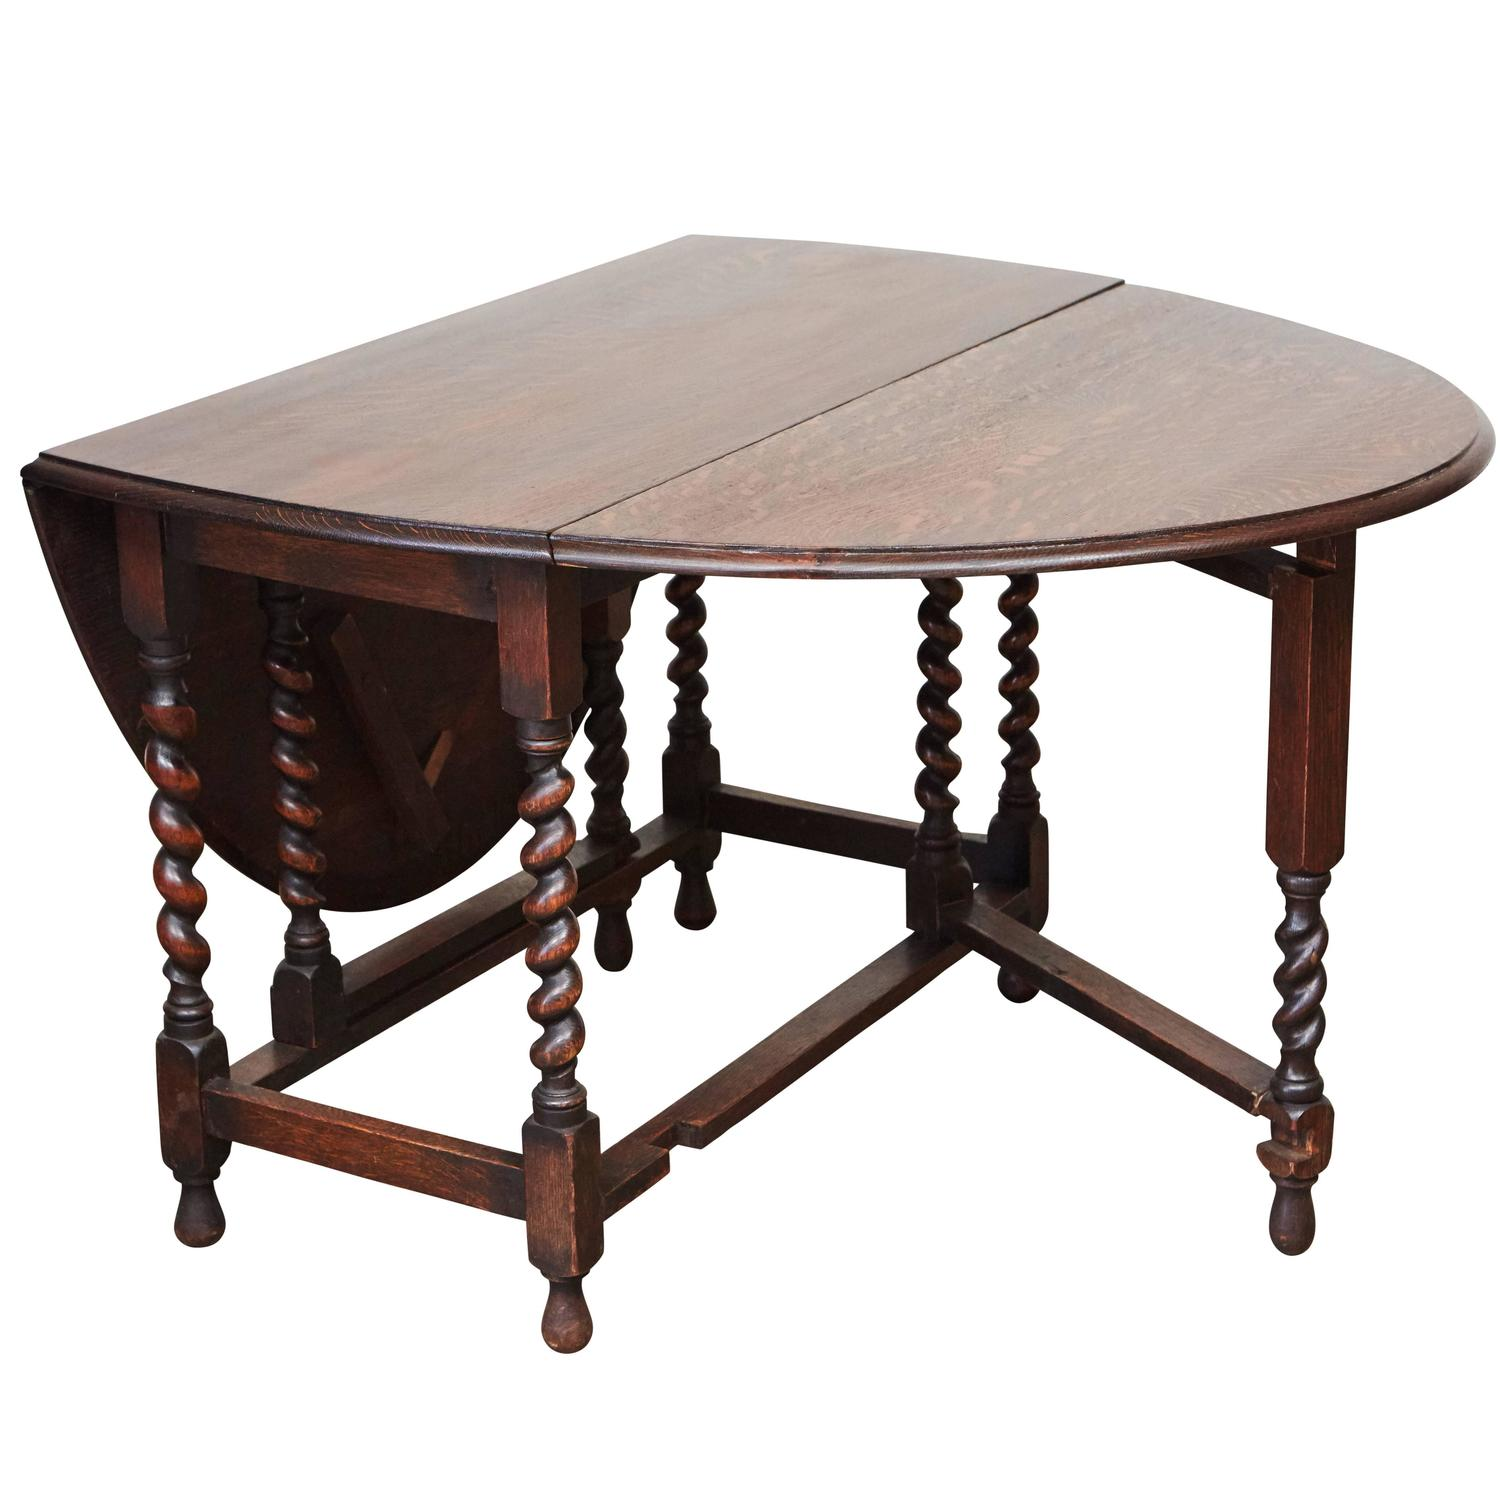 gateleg table with chairs racing seat office chair south africa english oak at 1stdibs